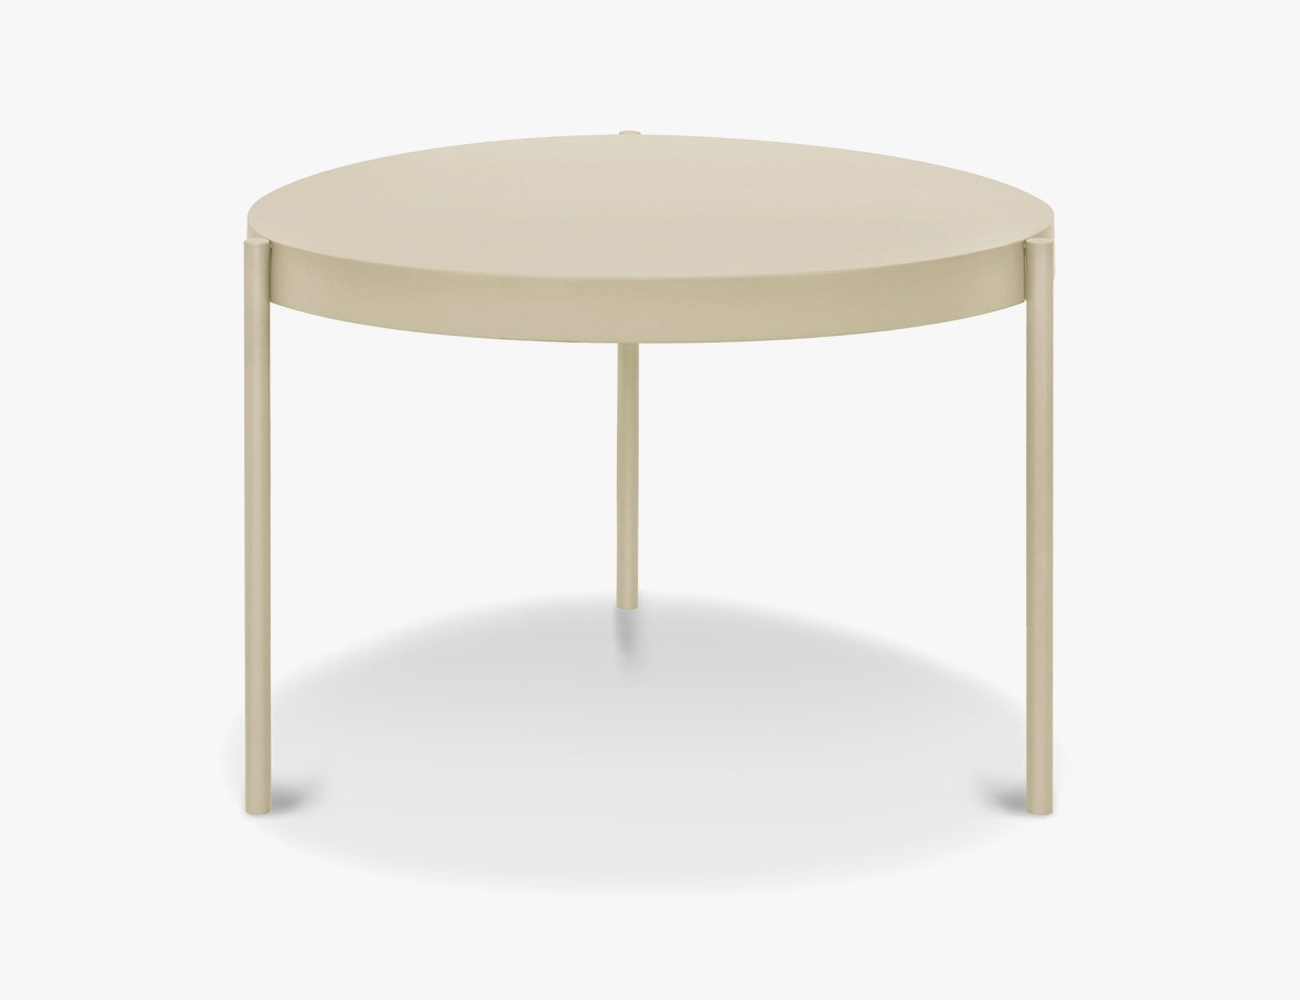 The Best Coffee Tables For Every Budget And Style Regarding Trendy Shroom Coffee Tables (View 10 of 20)